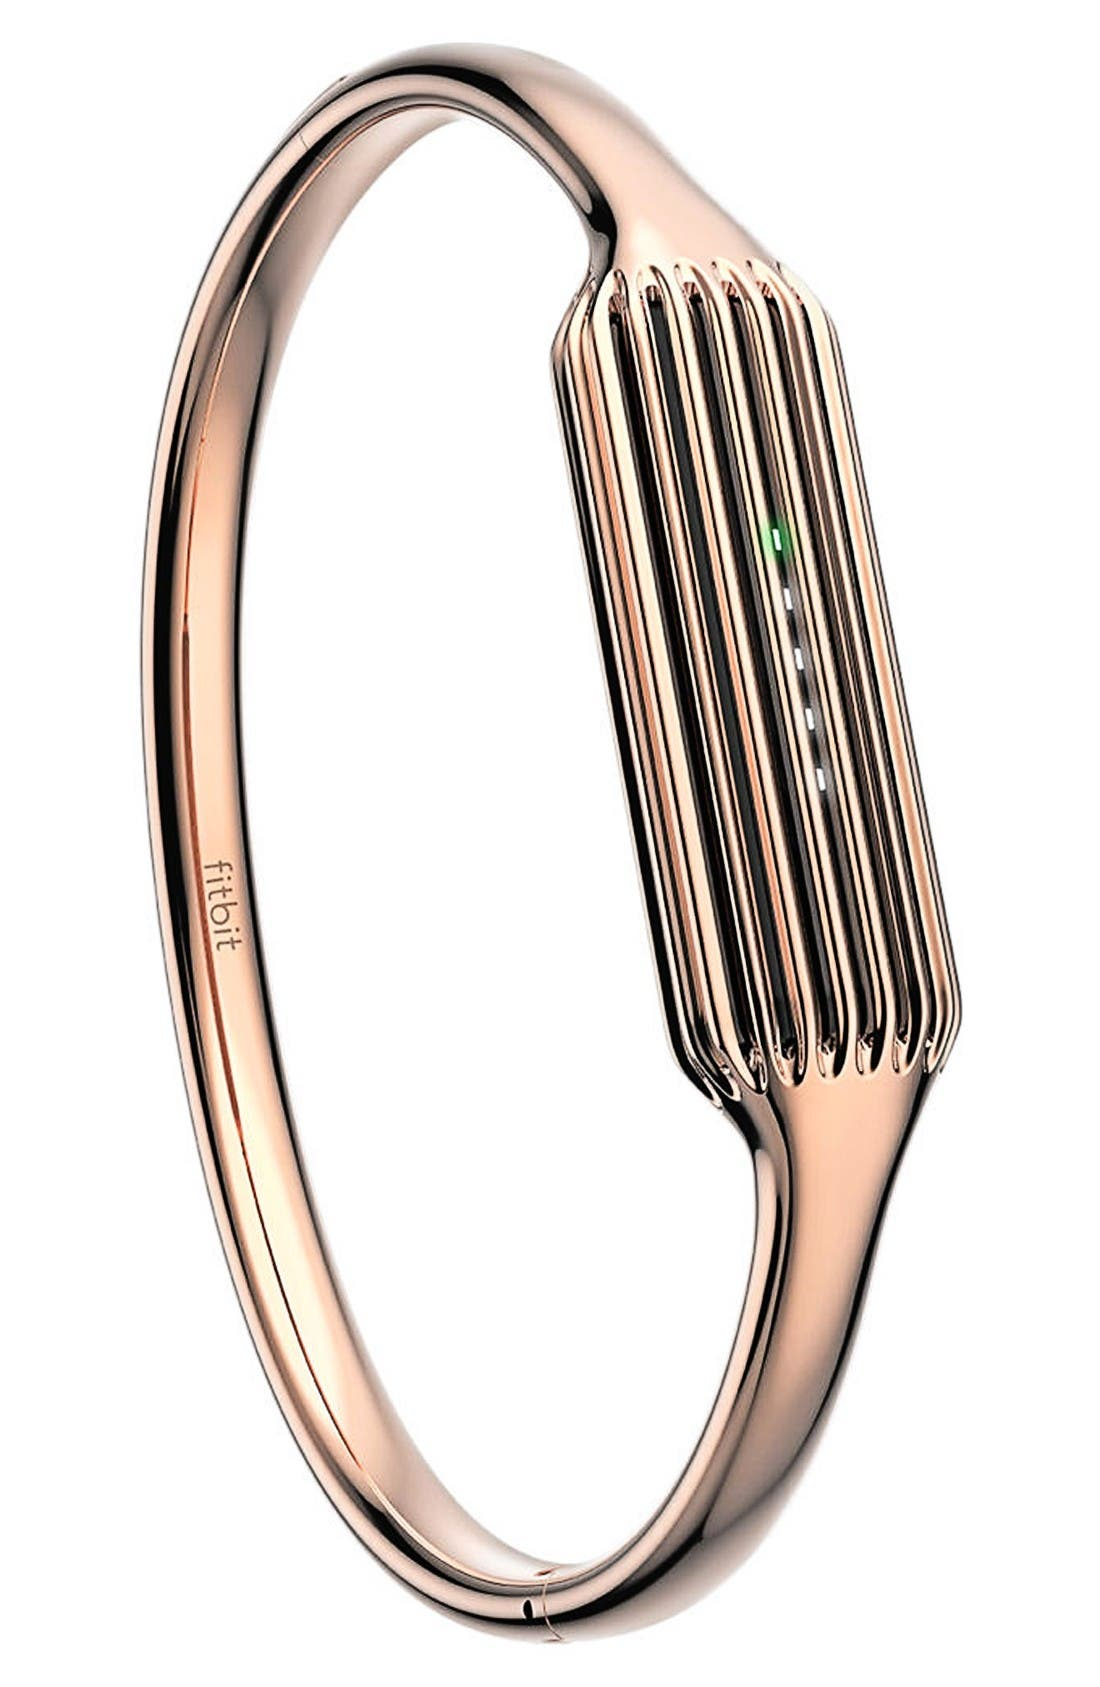 Flex 2 Small Bangle Accessory,                             Alternate thumbnail 3, color,                             Rose Gold